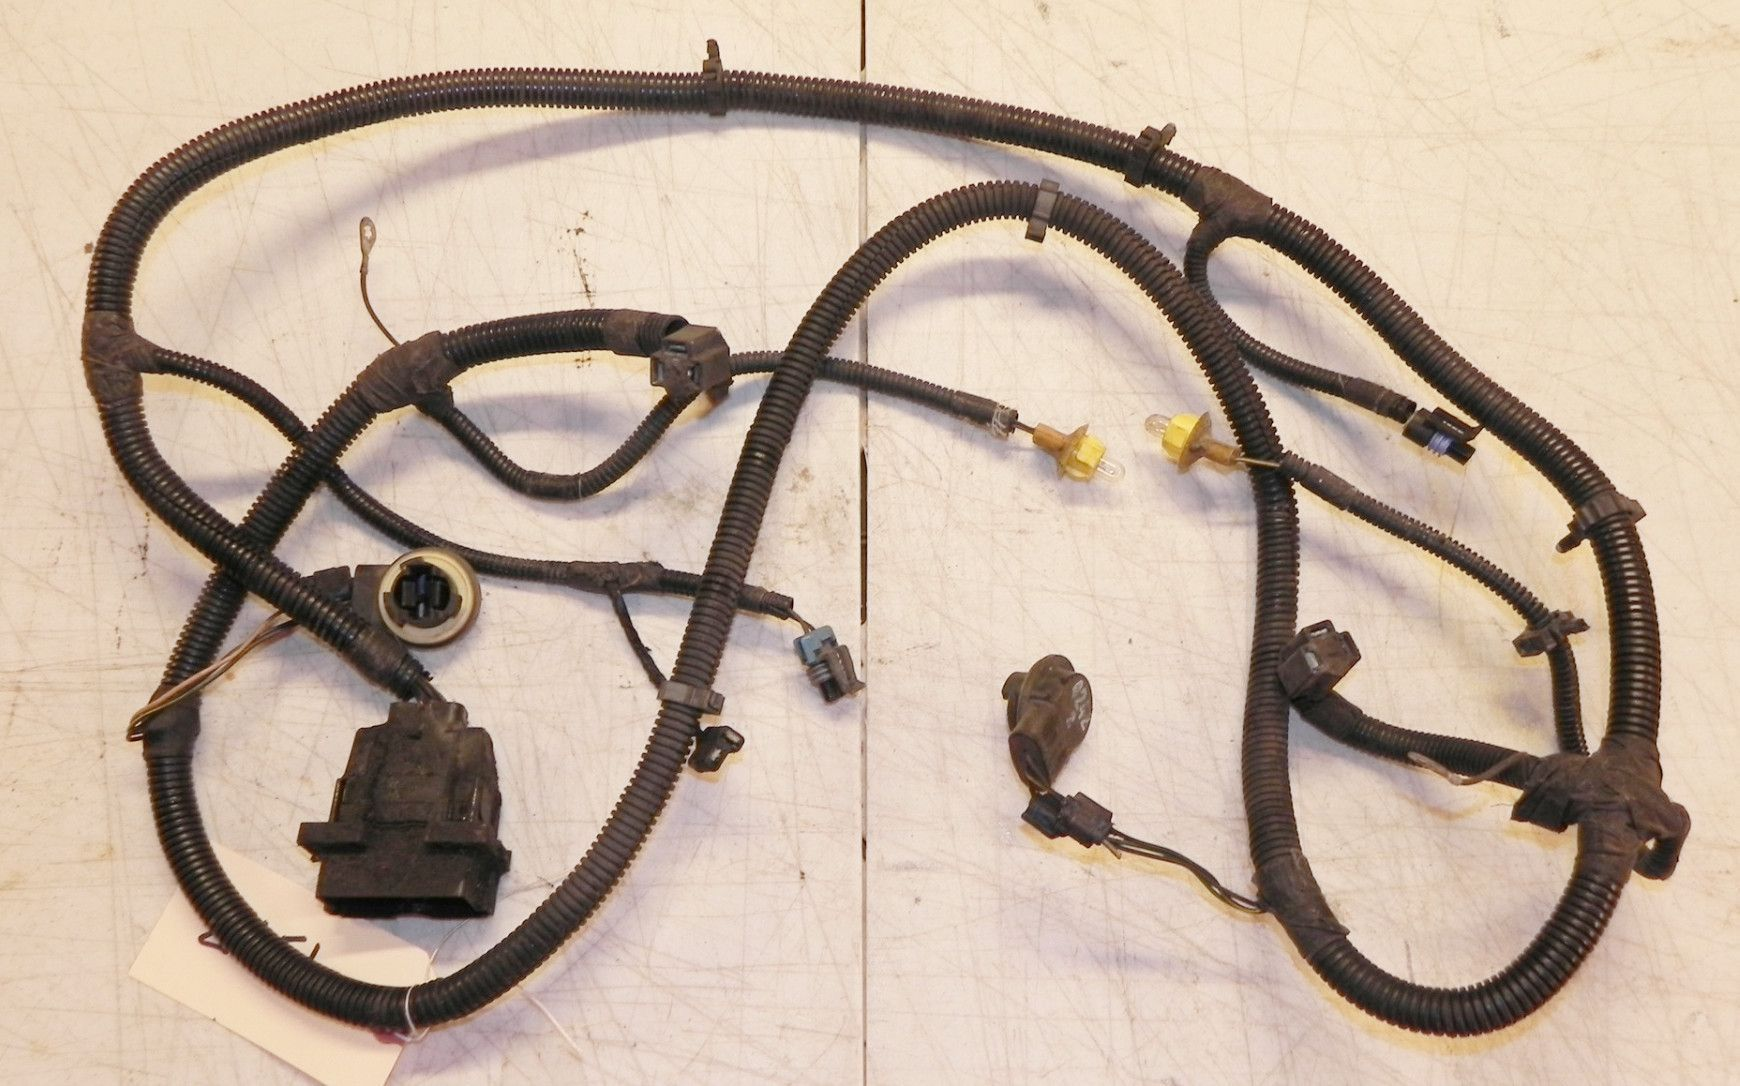 jeep wrangler yj grille headlight turn signal wiring harness 92 95 oem factory [ 1740 x 1086 Pixel ]